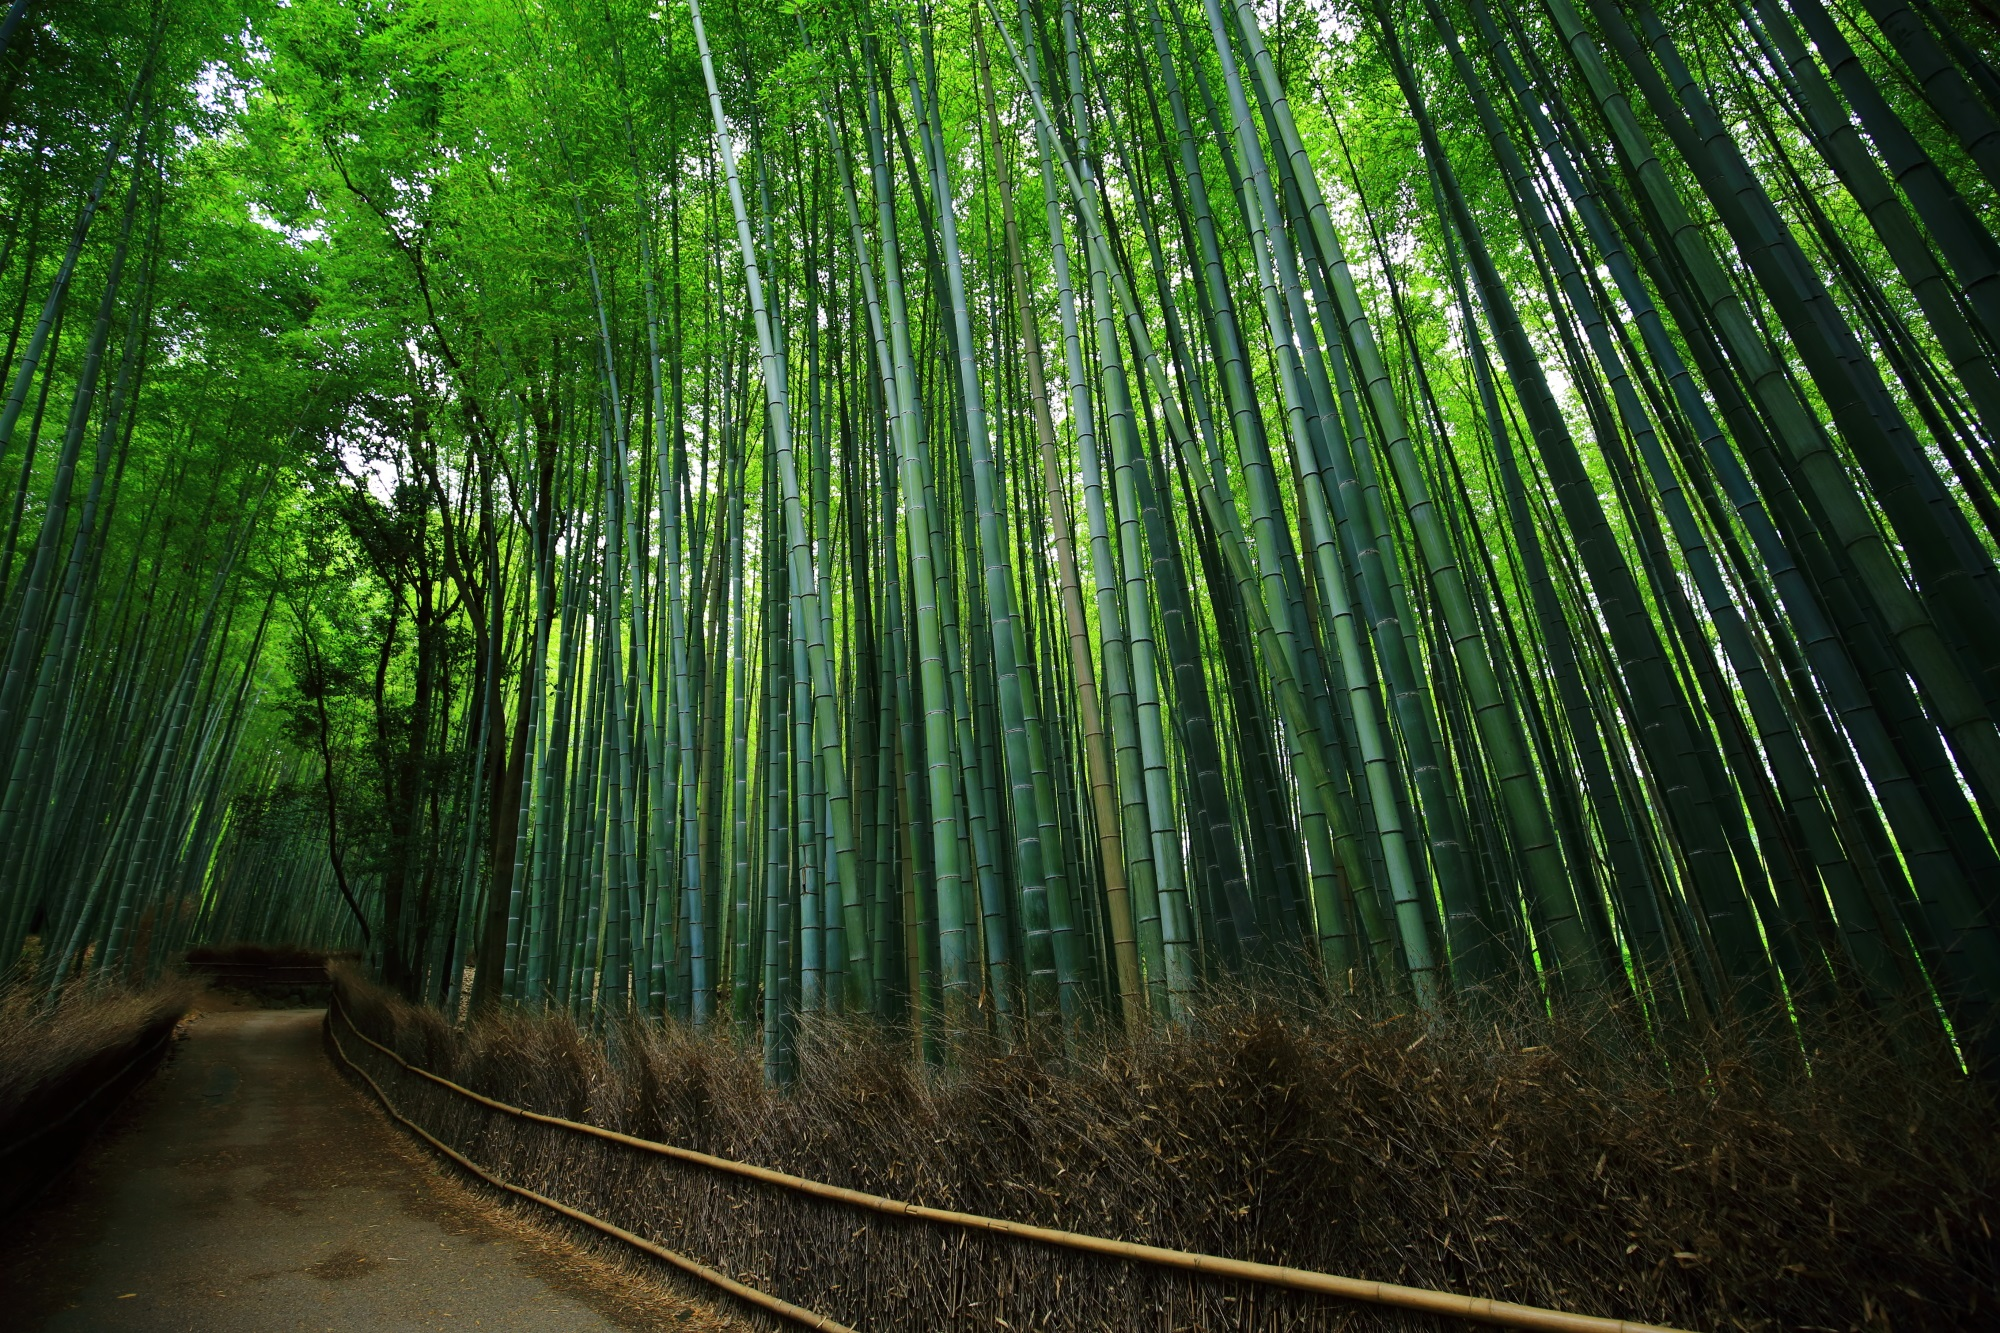 Kyoto Sagano Chikurin-no-michi Road of bamboo forest